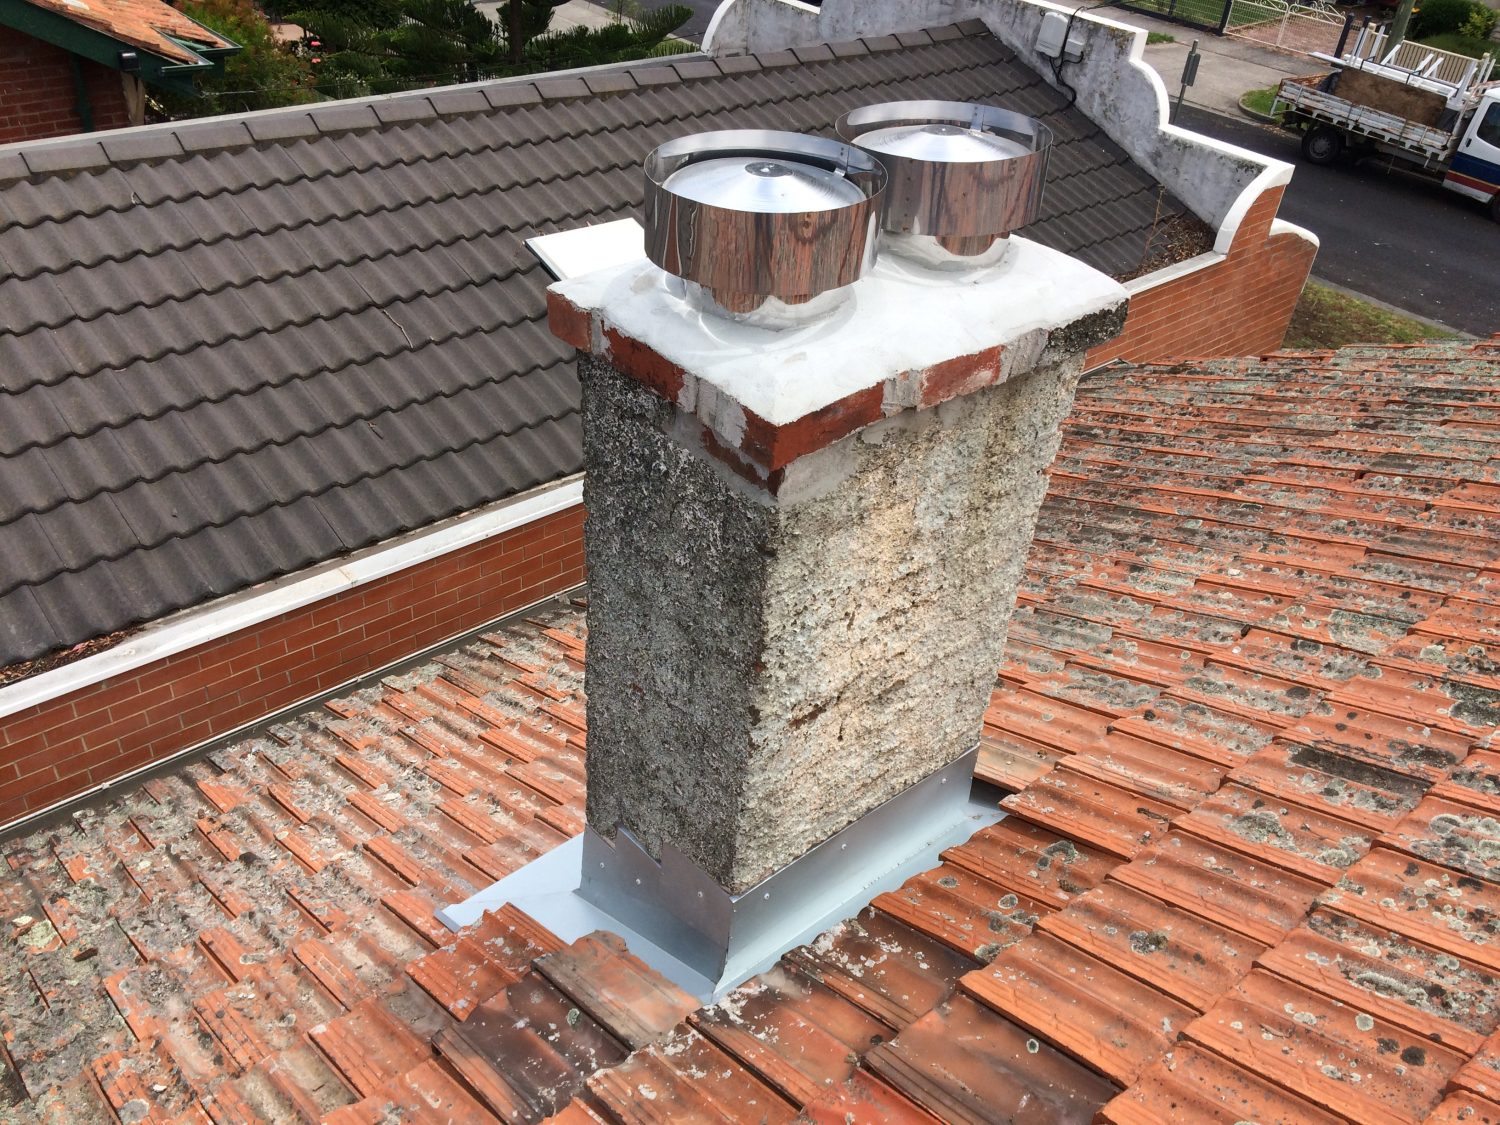 Chimney Flashing Replacement East Geelong Belmont Roof